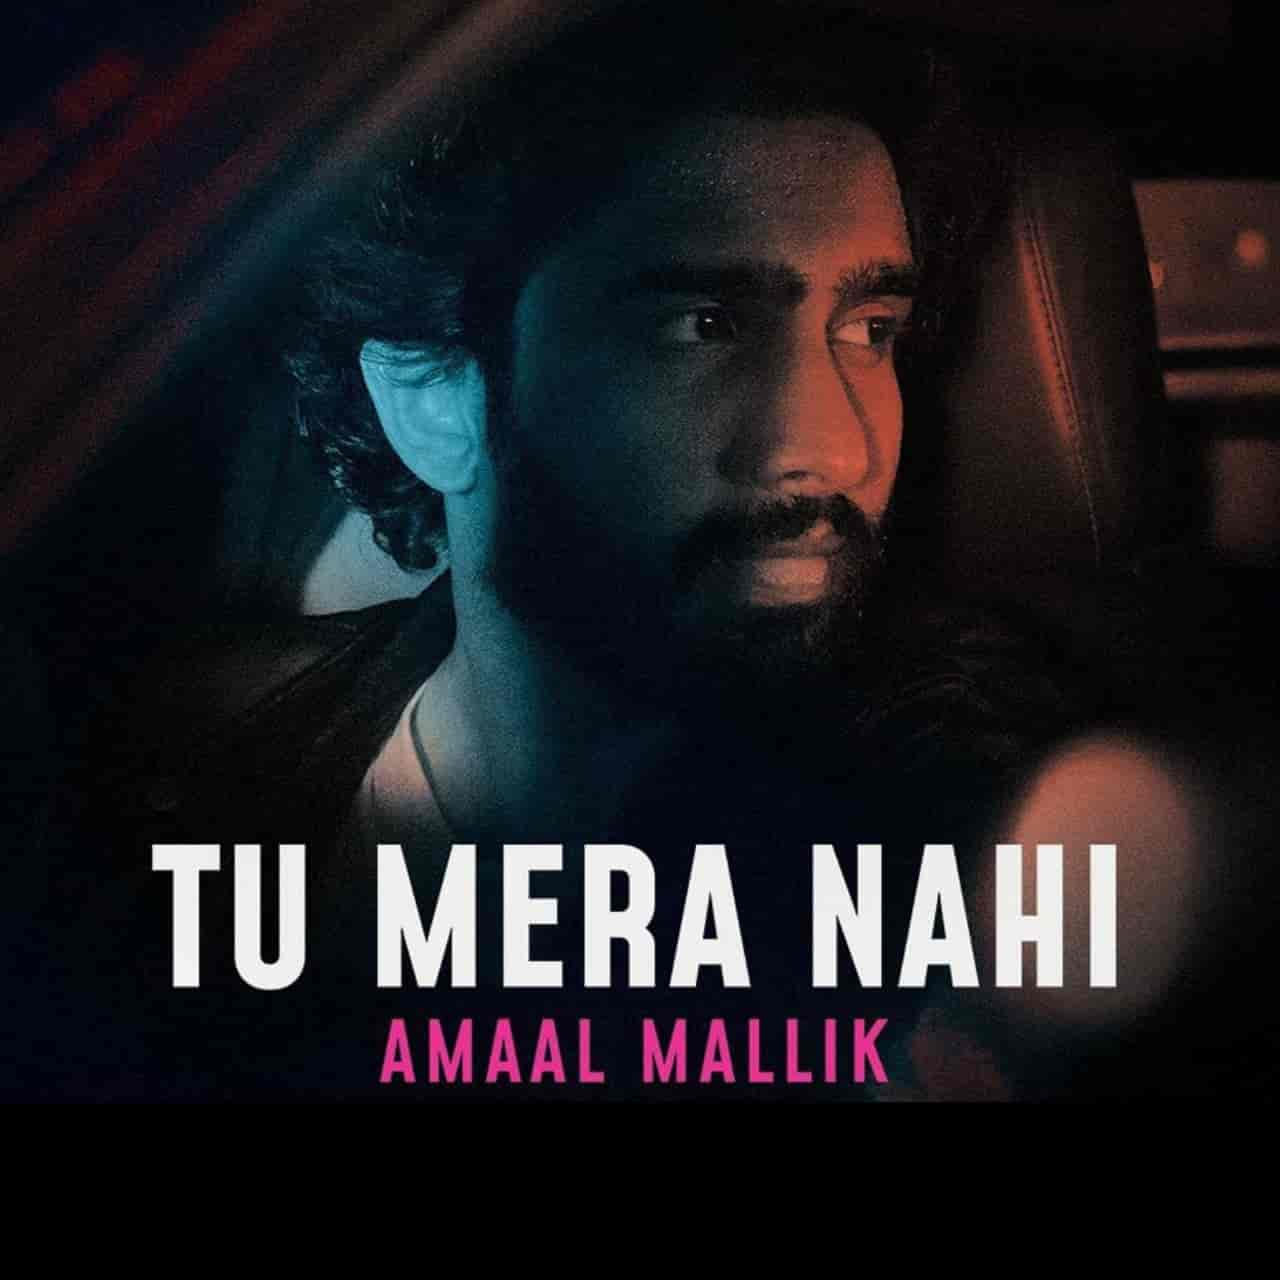 A very beautiful sad hindi song which is titled Tu Mera Nahi has released. This is a debut song for very talented artist Amaal Mallik.